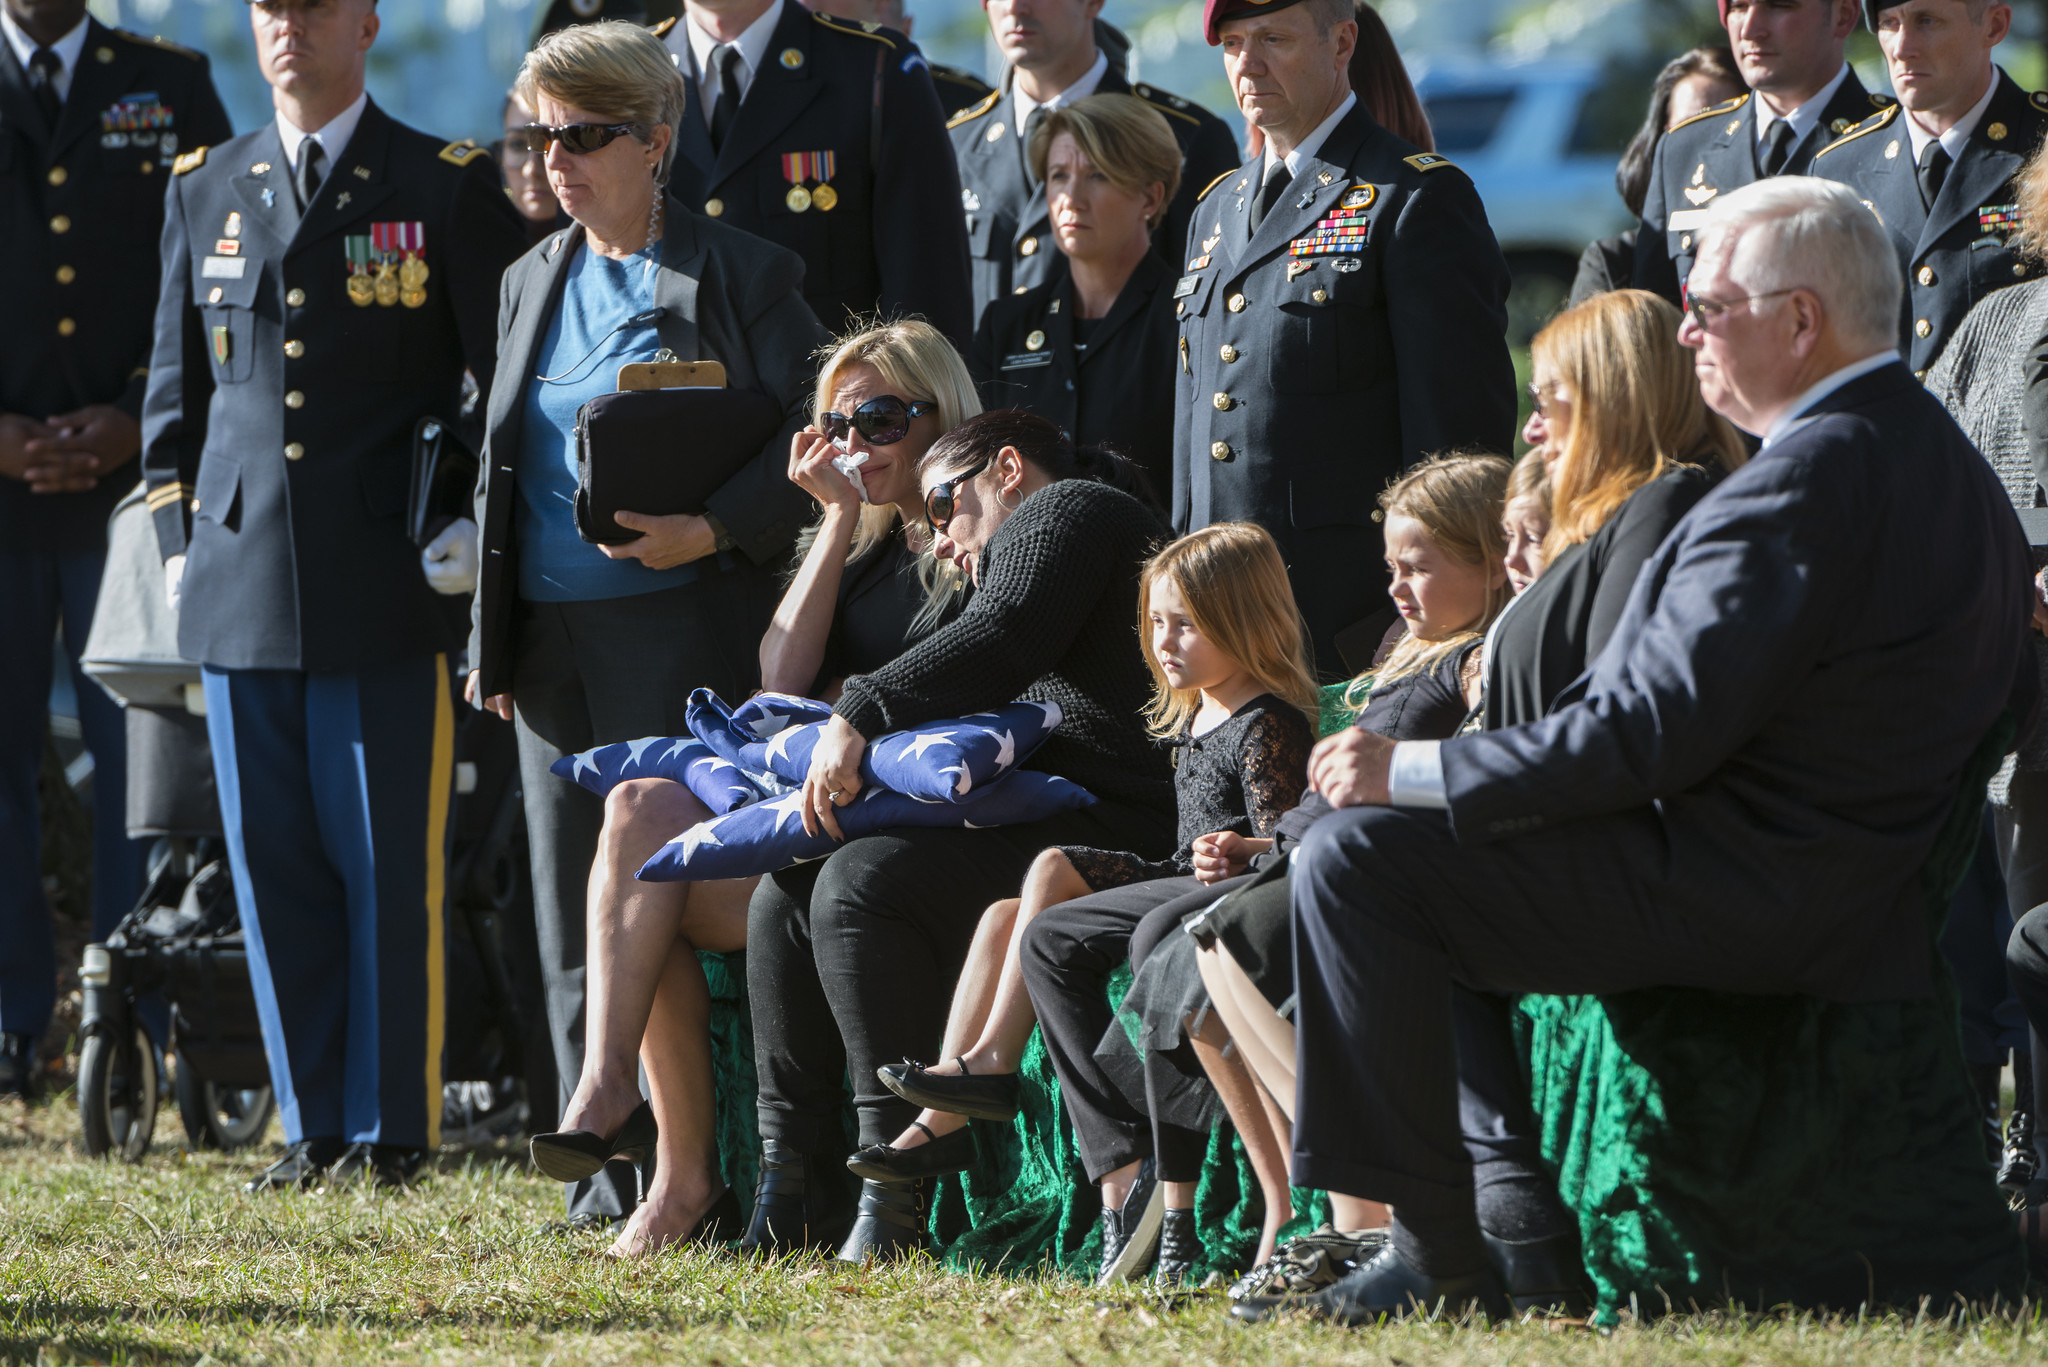 Graveside Service for U.S. Army Staff Sgt. Alexander Dalida in Section 60 of Arlington National Cemetery